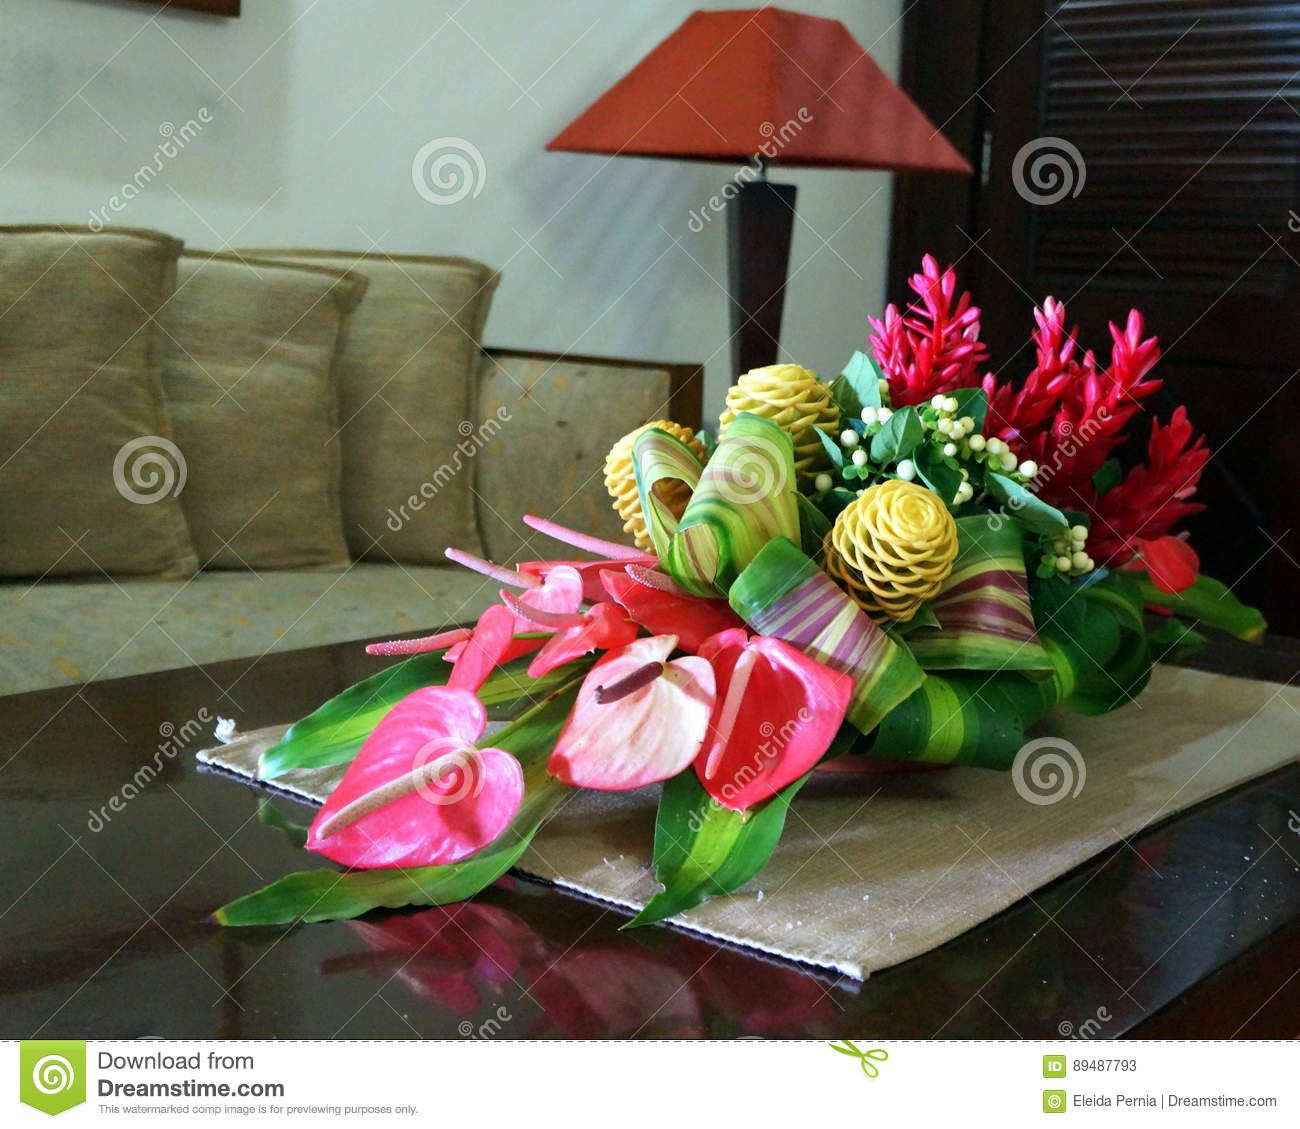 bouquets des fleurs exotiques image stock image du tropical fleurs 89487793. Black Bedroom Furniture Sets. Home Design Ideas